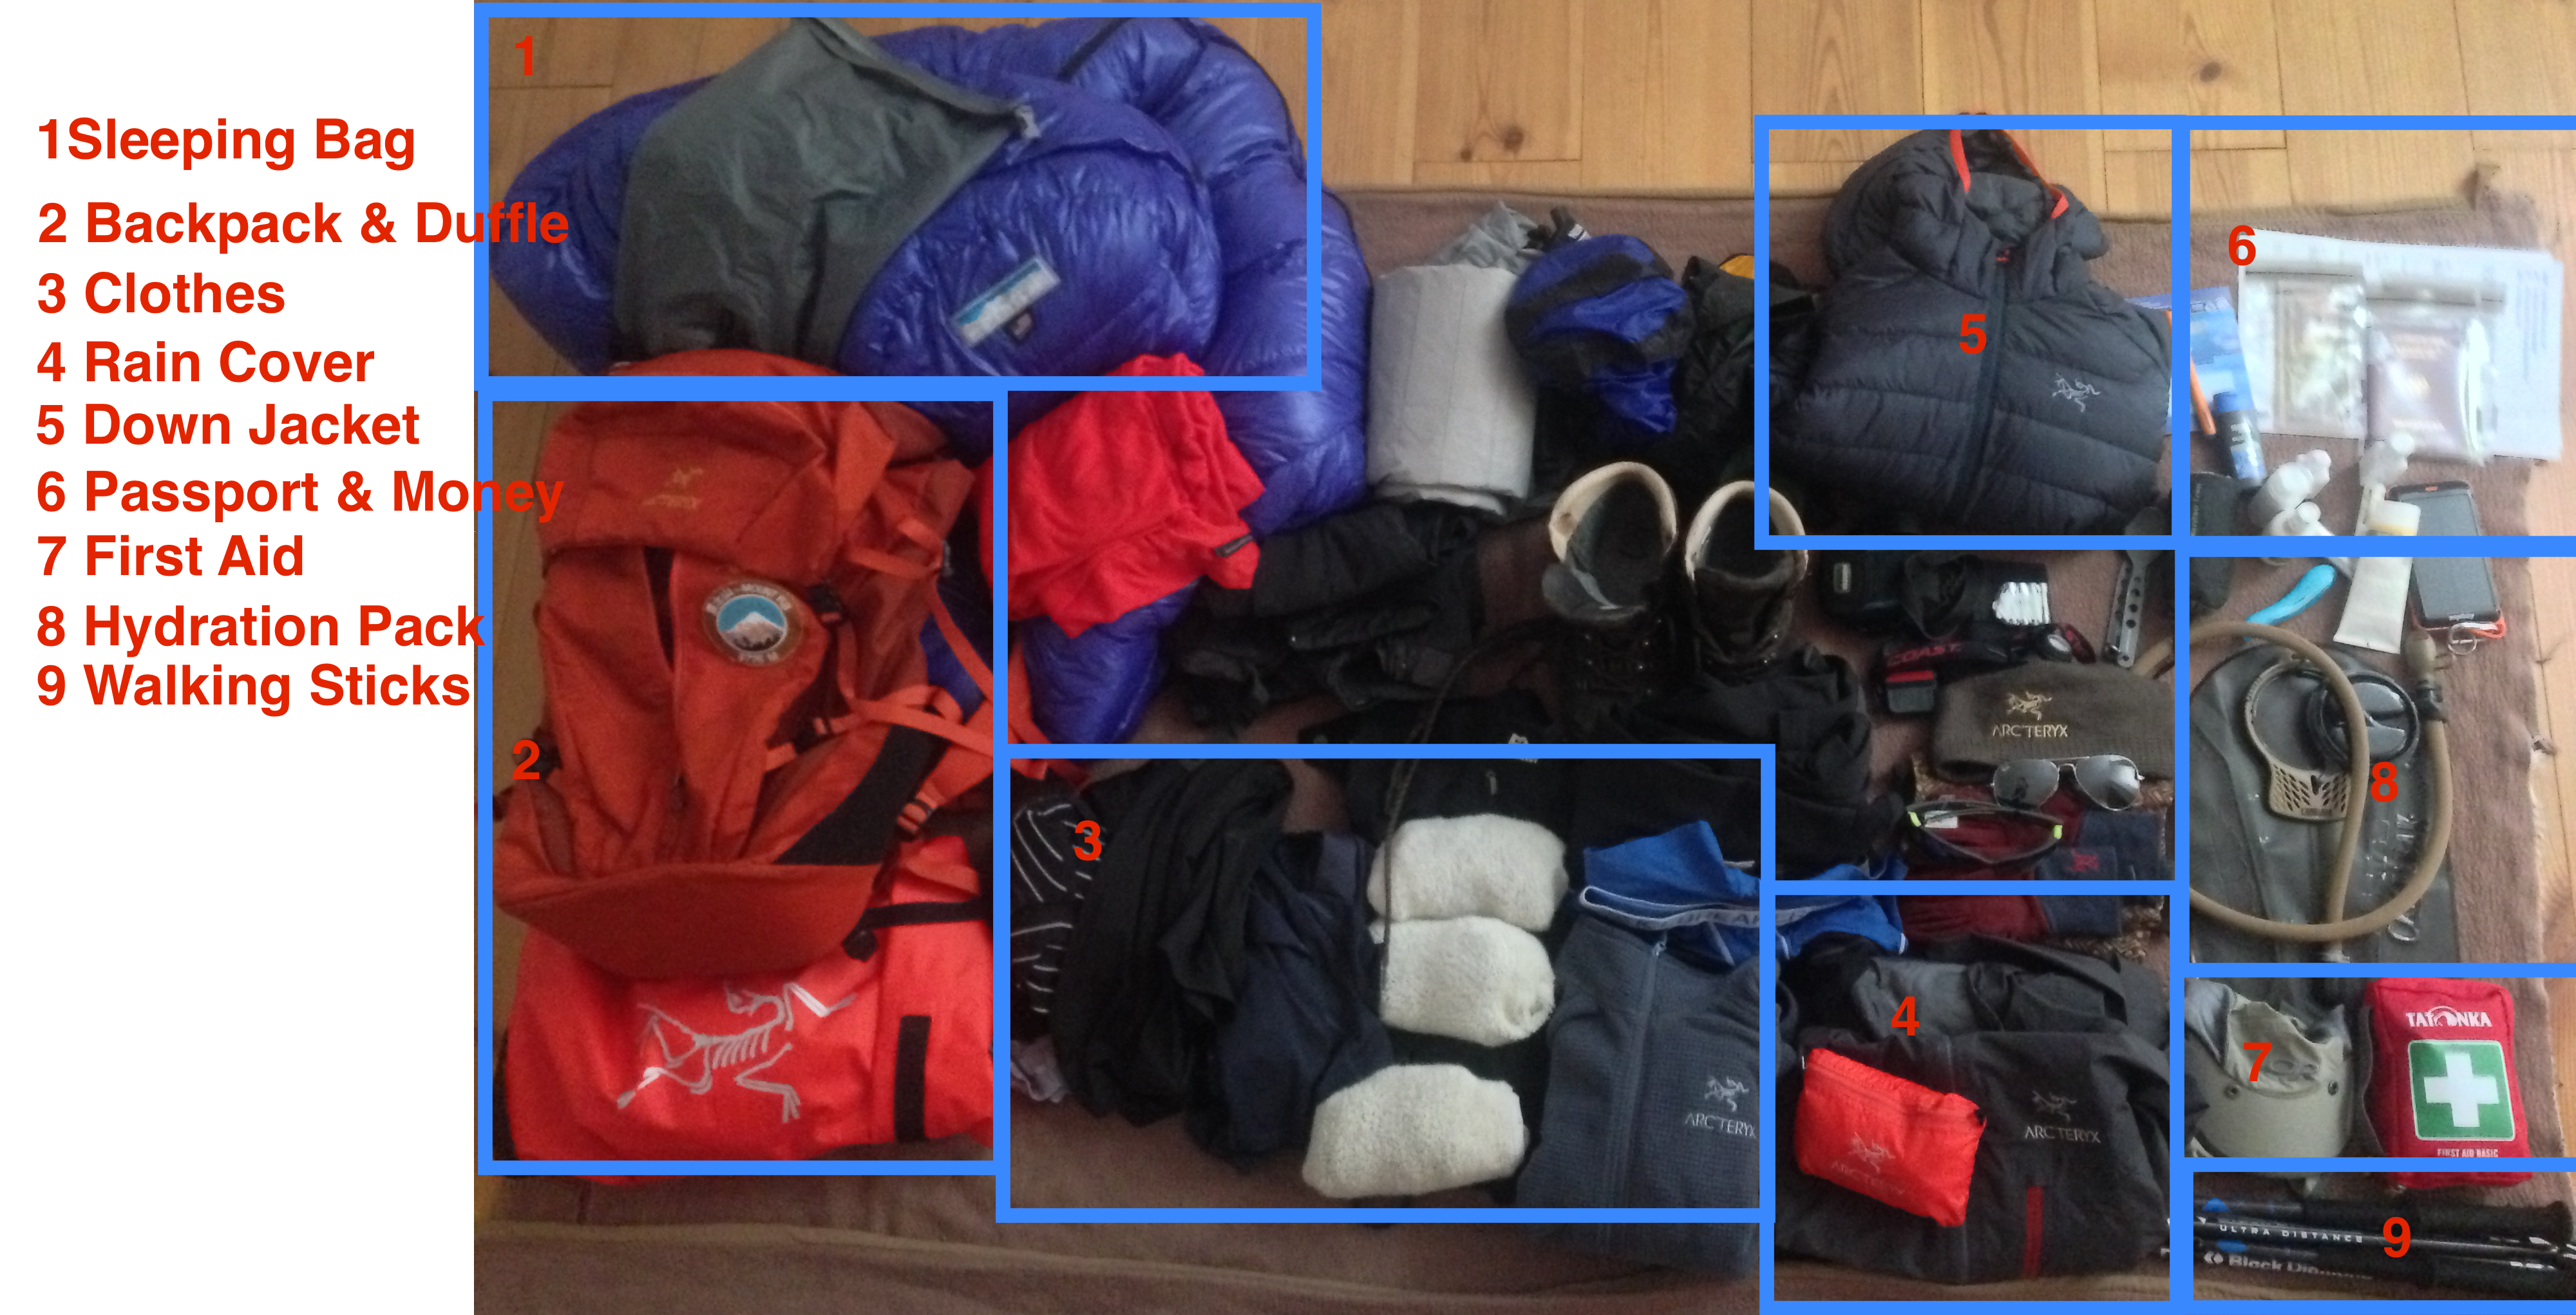 Kilimanjaro Preparations - Equipment